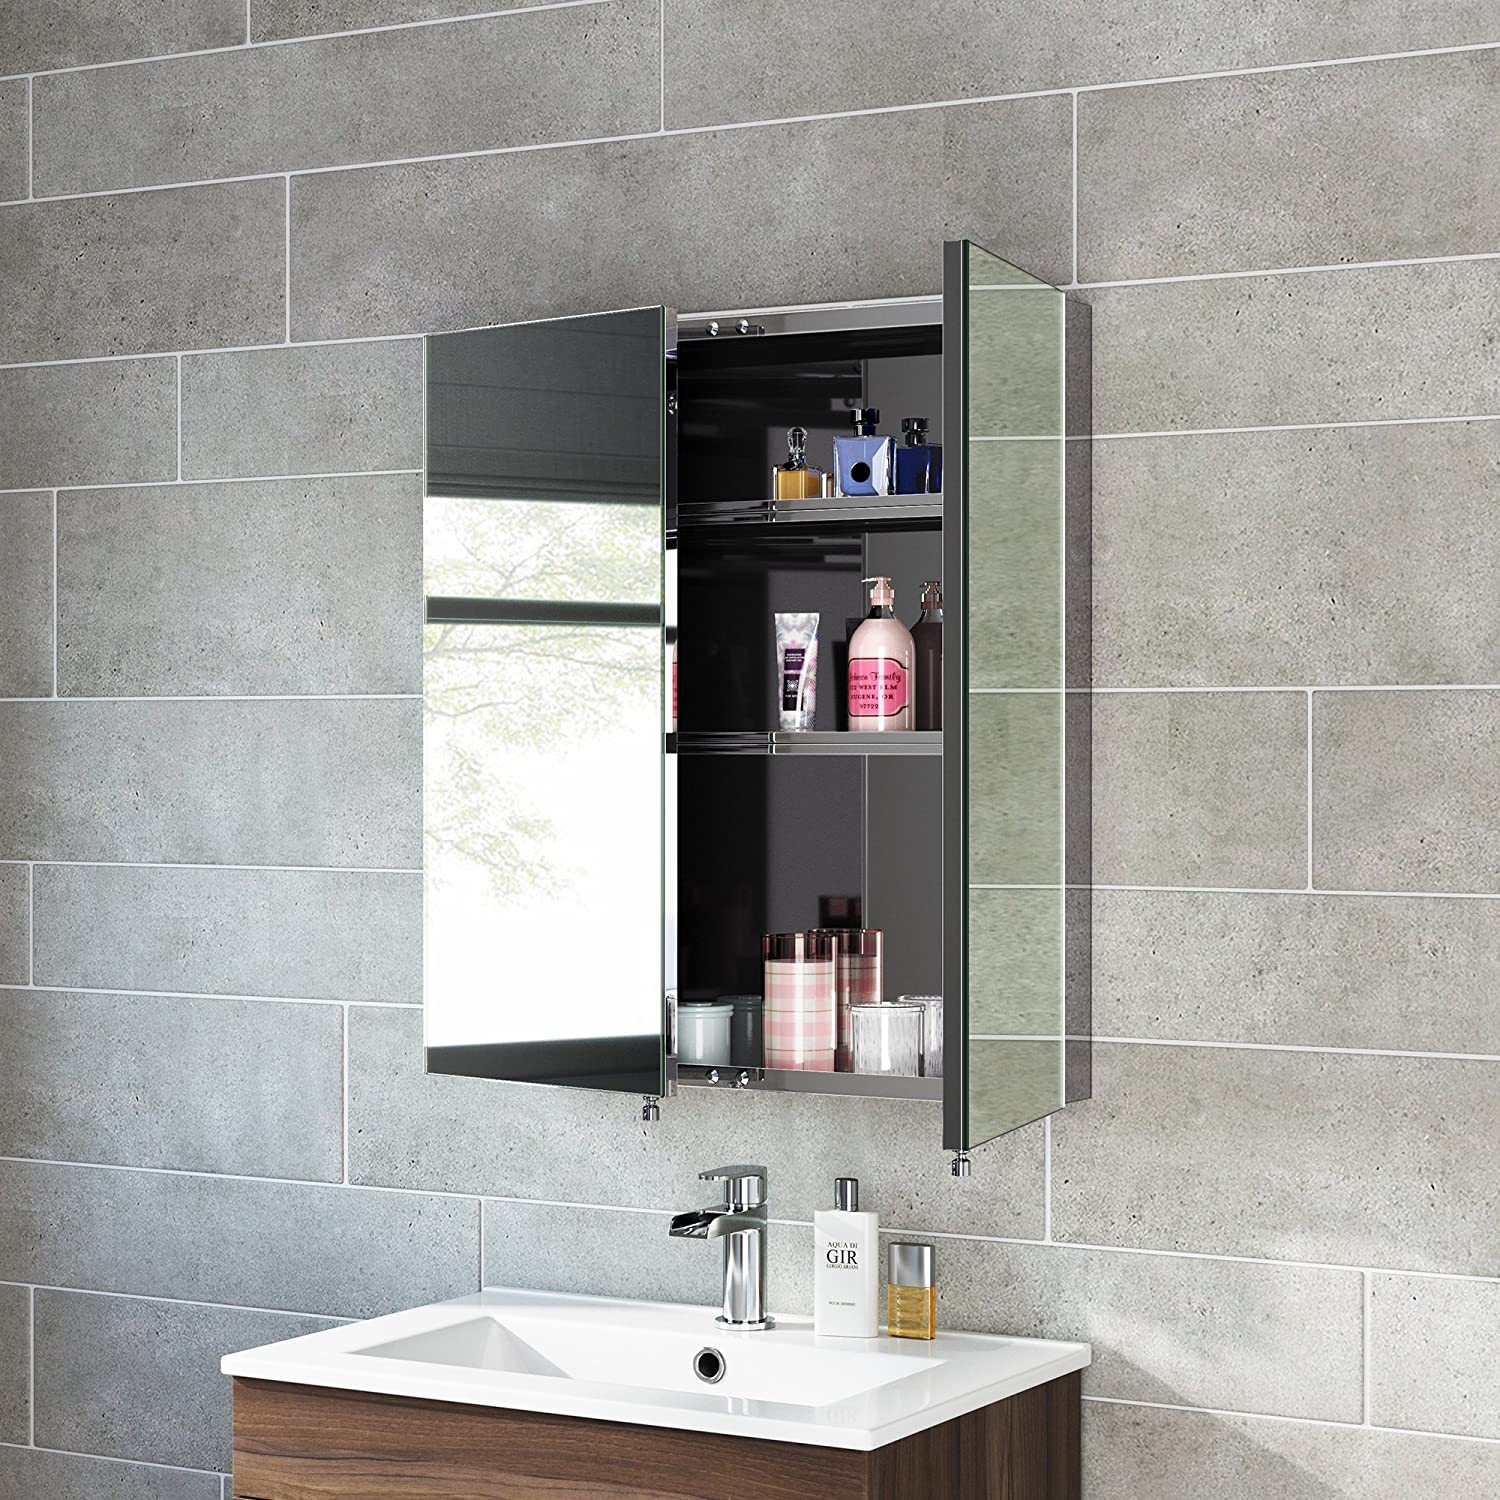 670 X 600 Stainless Steel Bathroom Mirror Cabinet Modern Double Door Storage Unit IBathUK Amazoncouk Kitchen Home